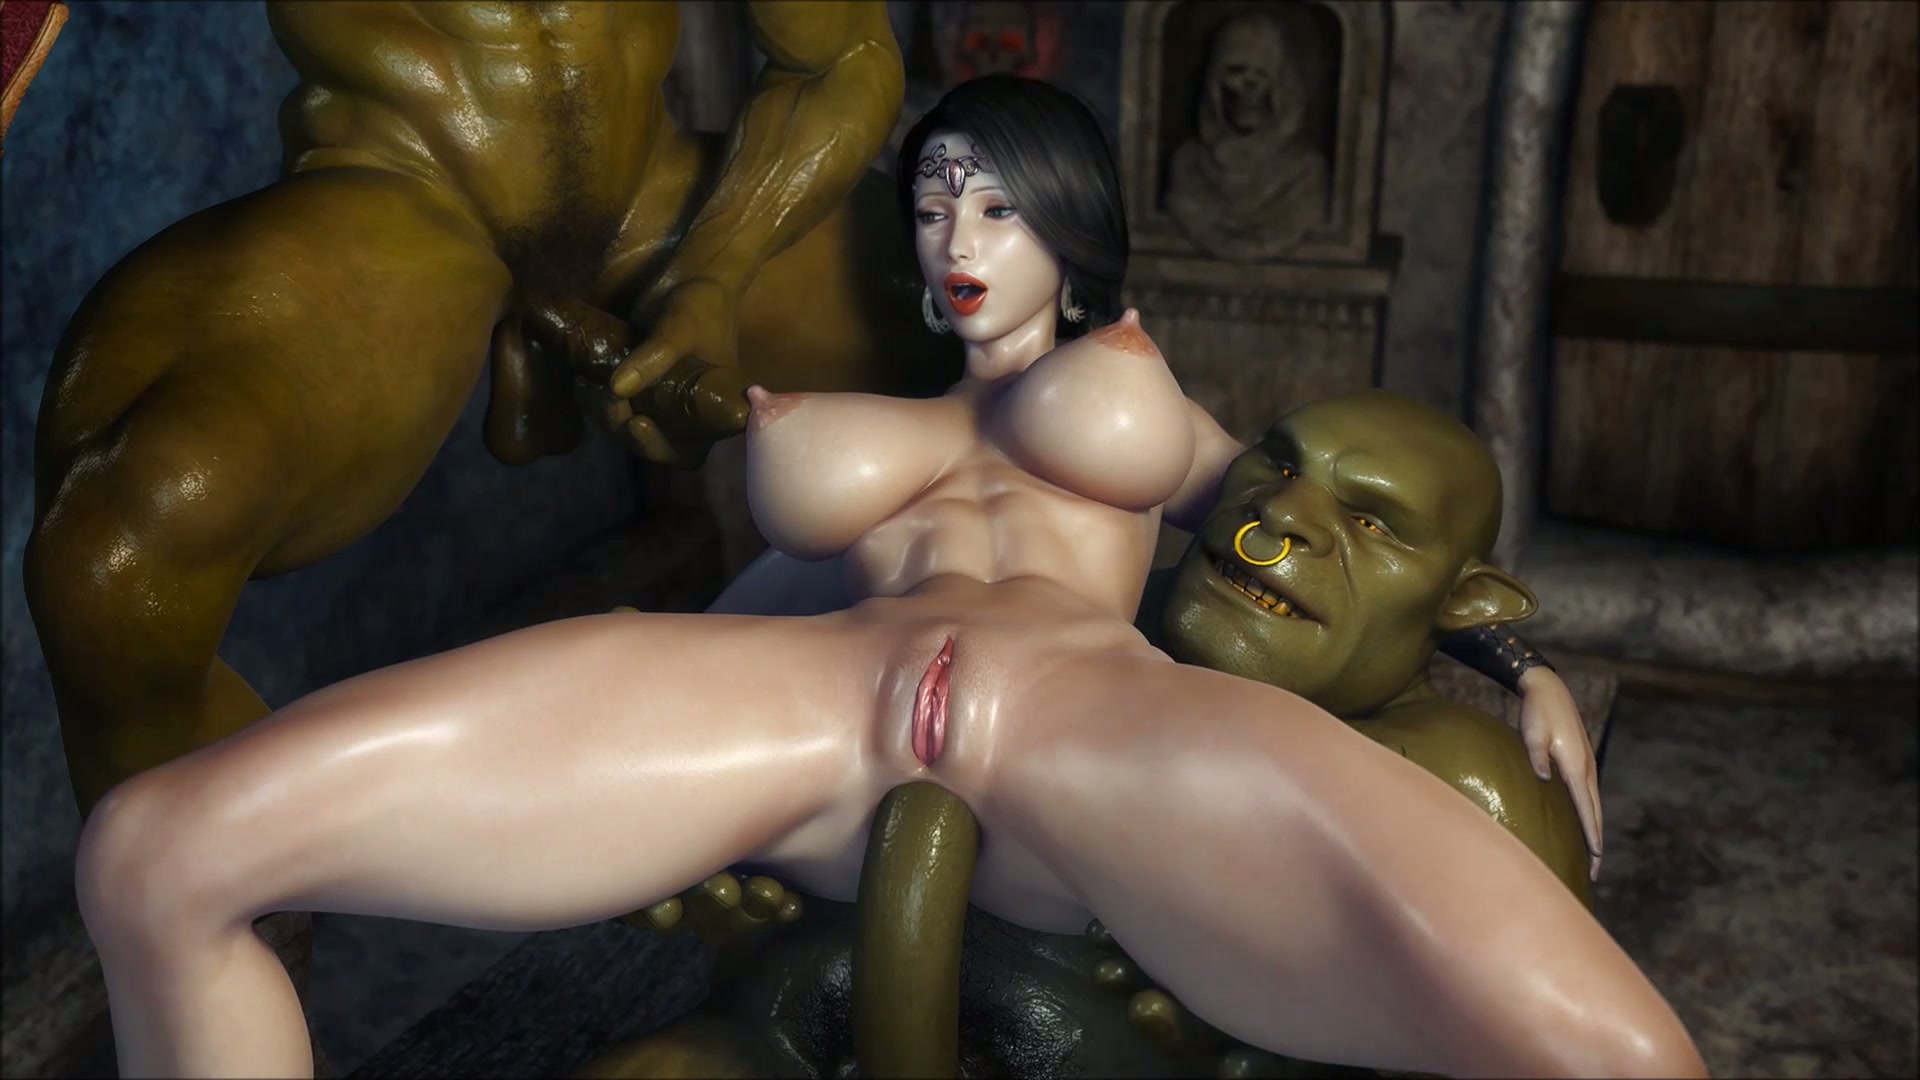 Monster woman gif hentai pron movies